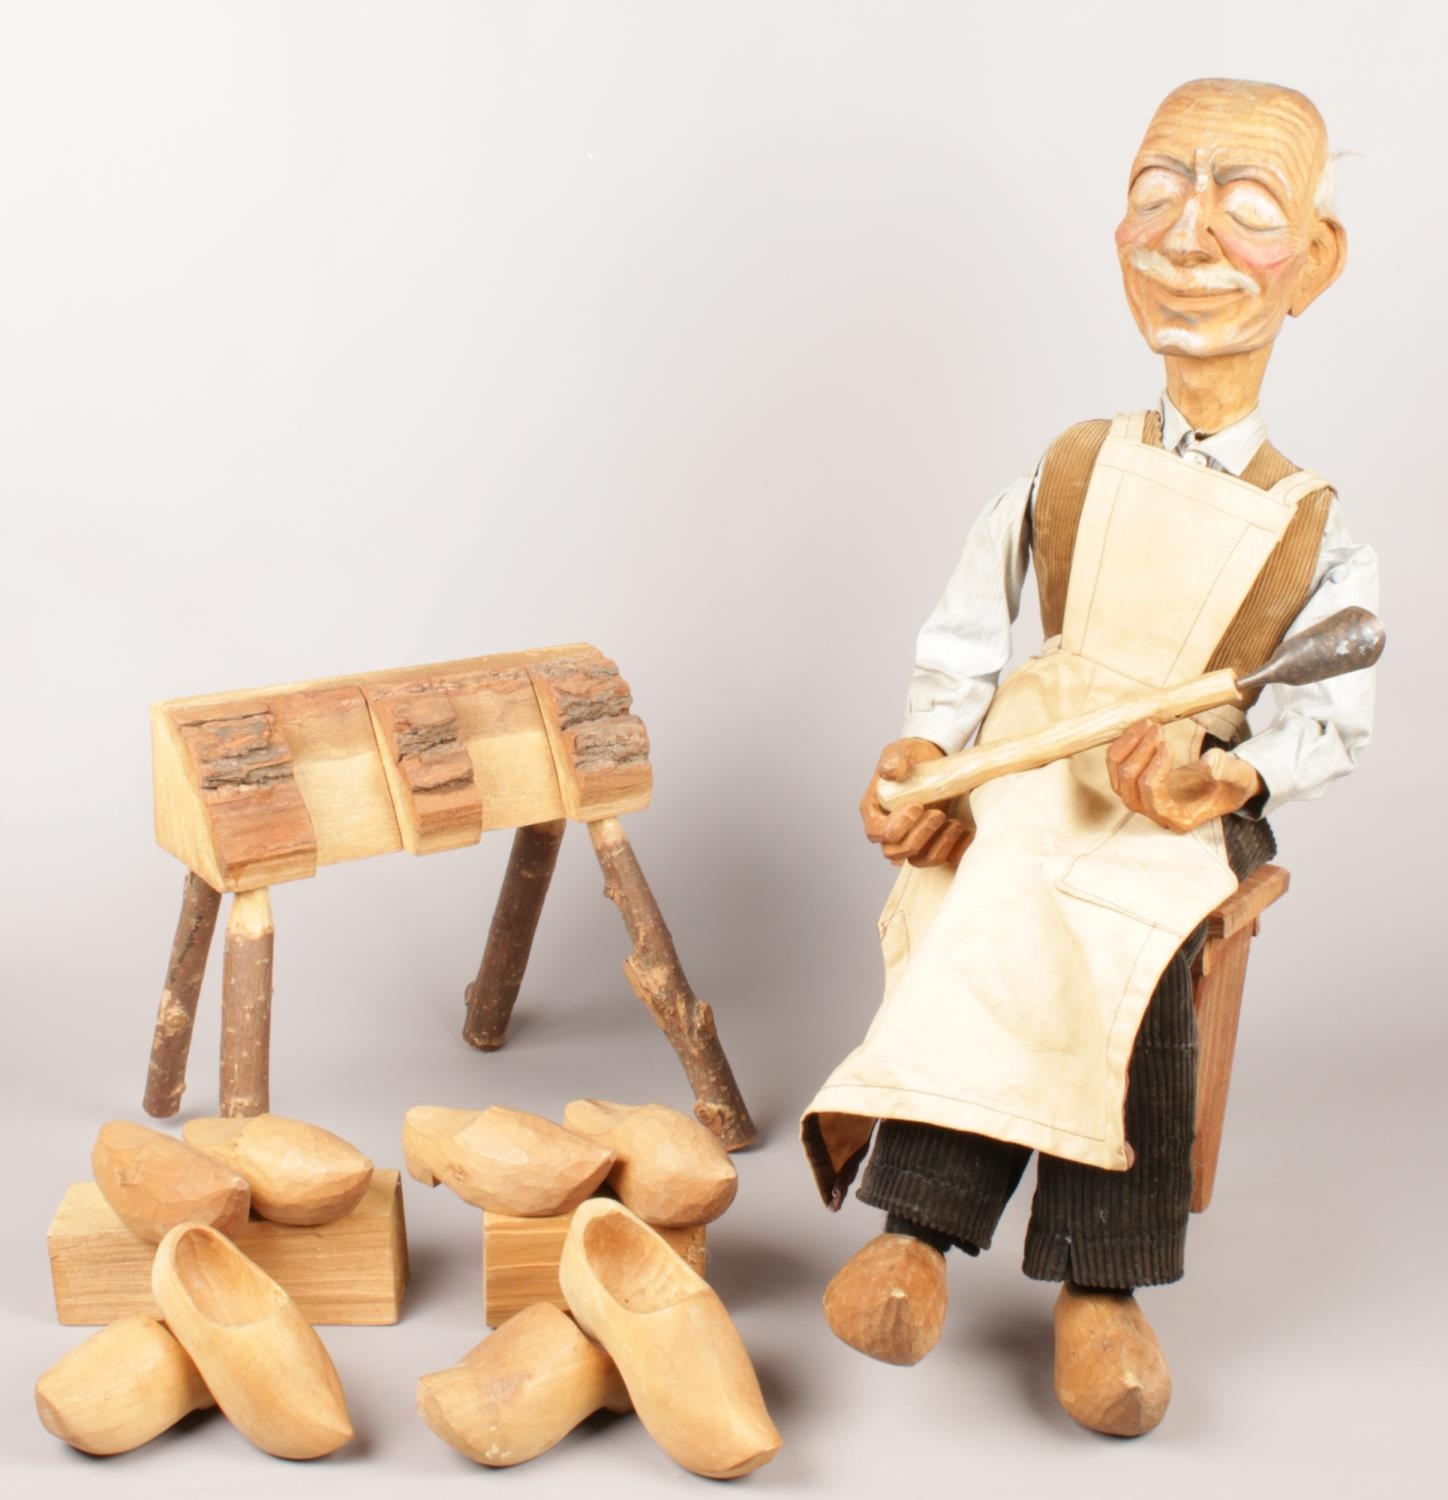 A carved wooden cobbler shop display model. Includes wooden bench and an assortment of wooden